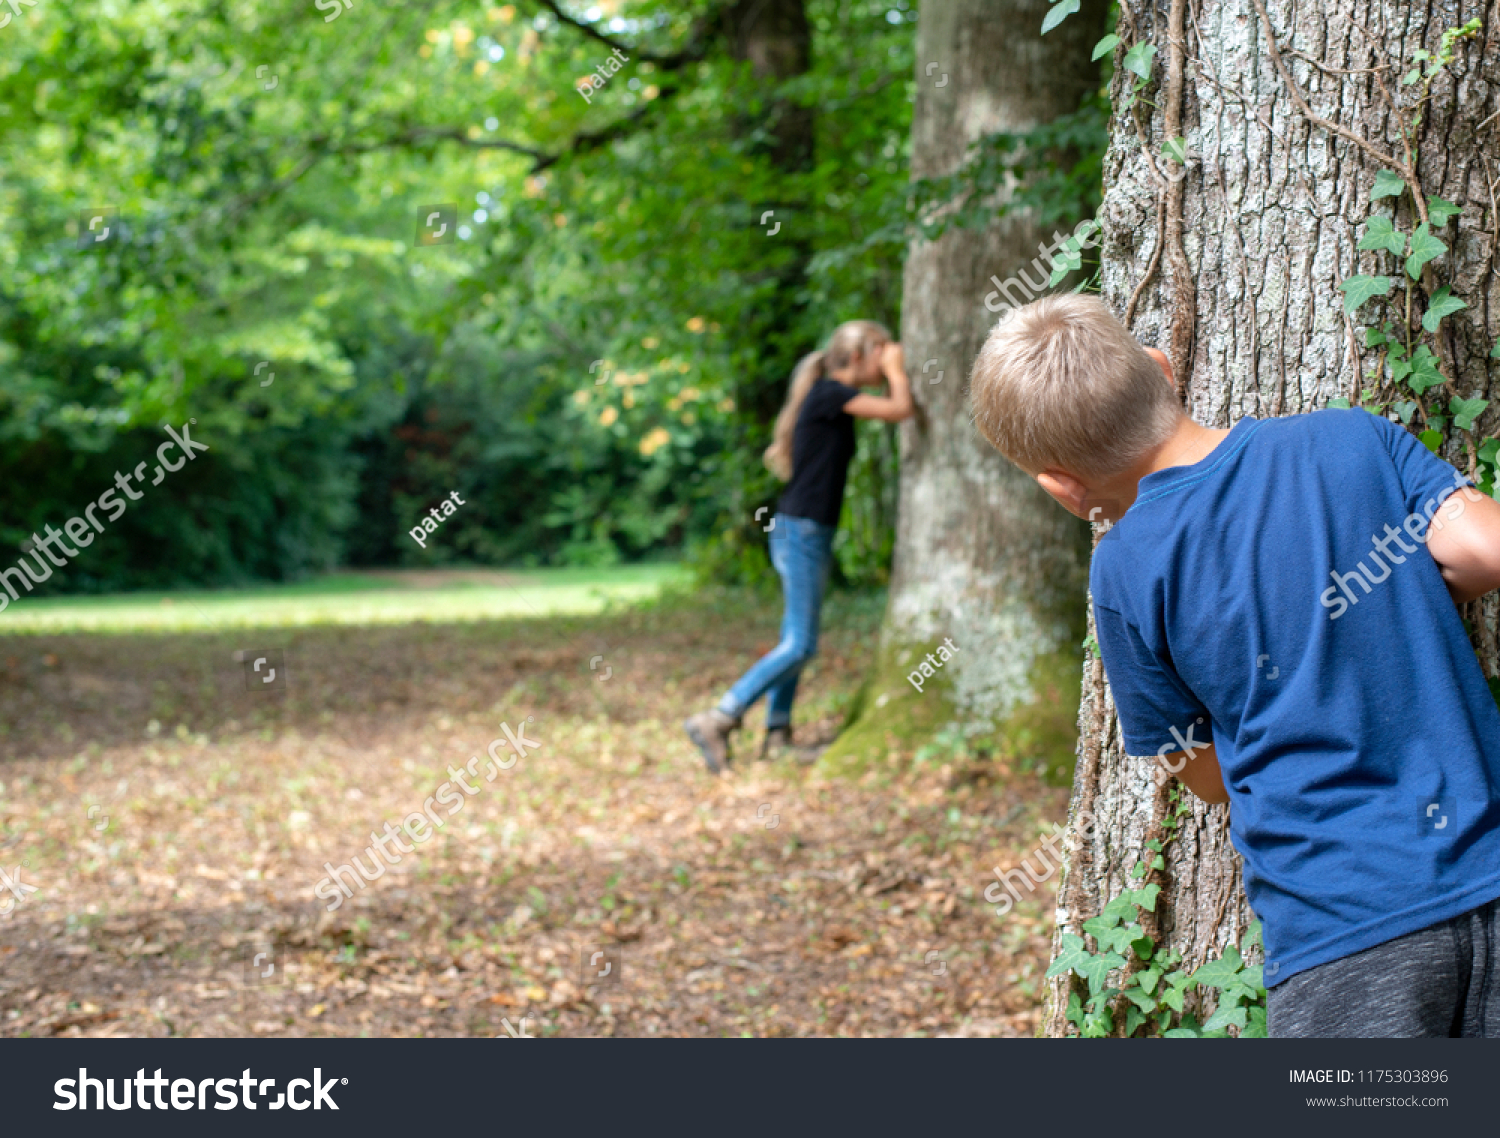 Hide And Seek Kids Kids Playing Hide Seek Forrest Stock Photo Edit Now 1175303896